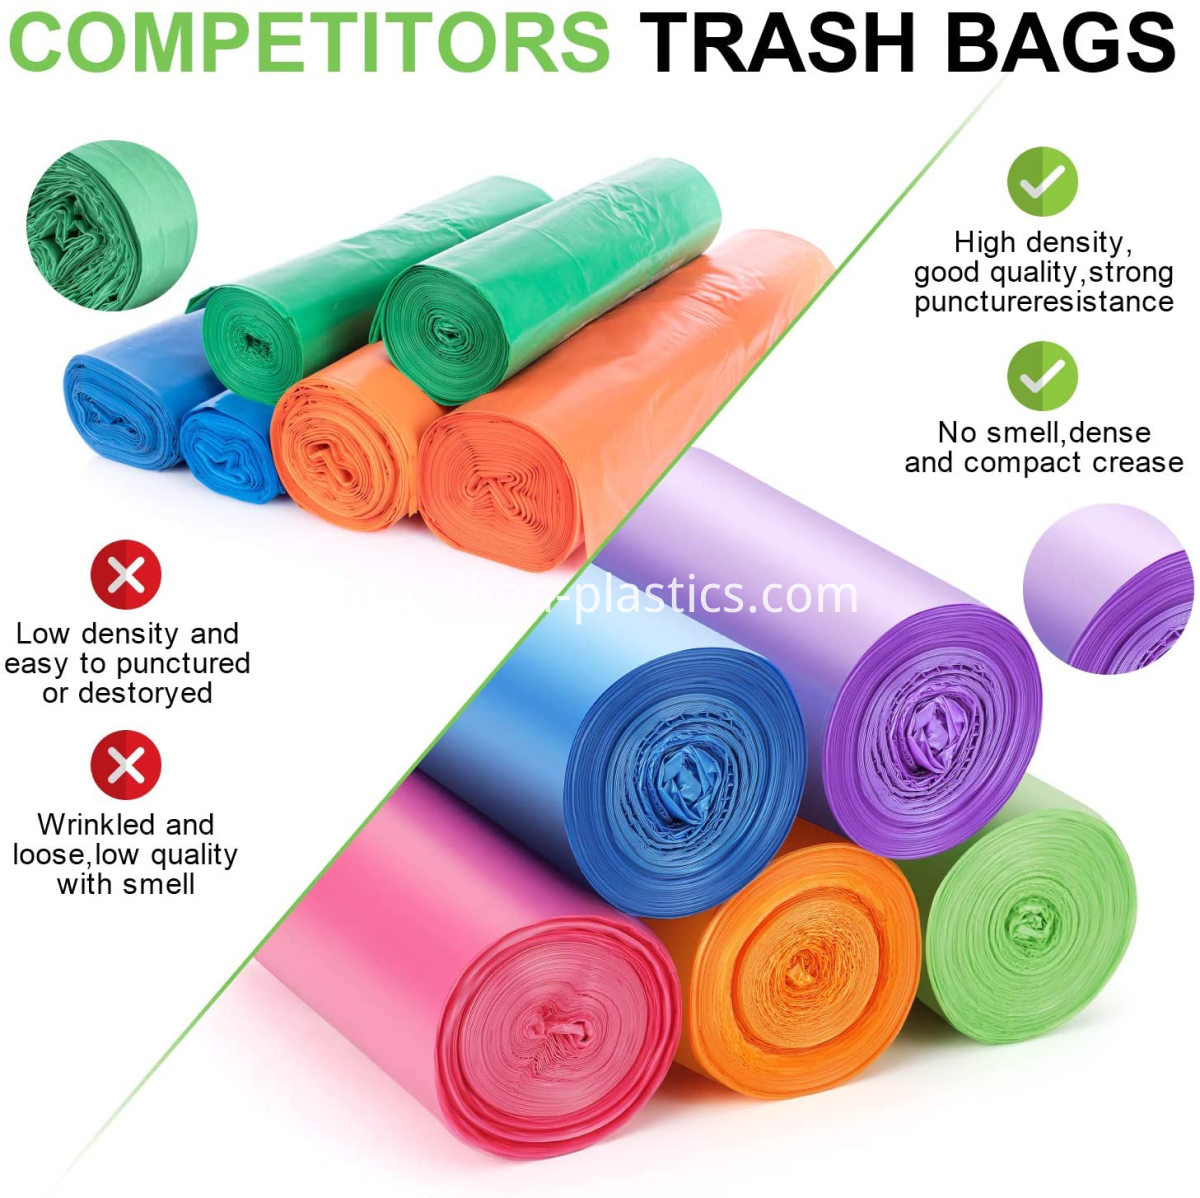 zero waste trash bags